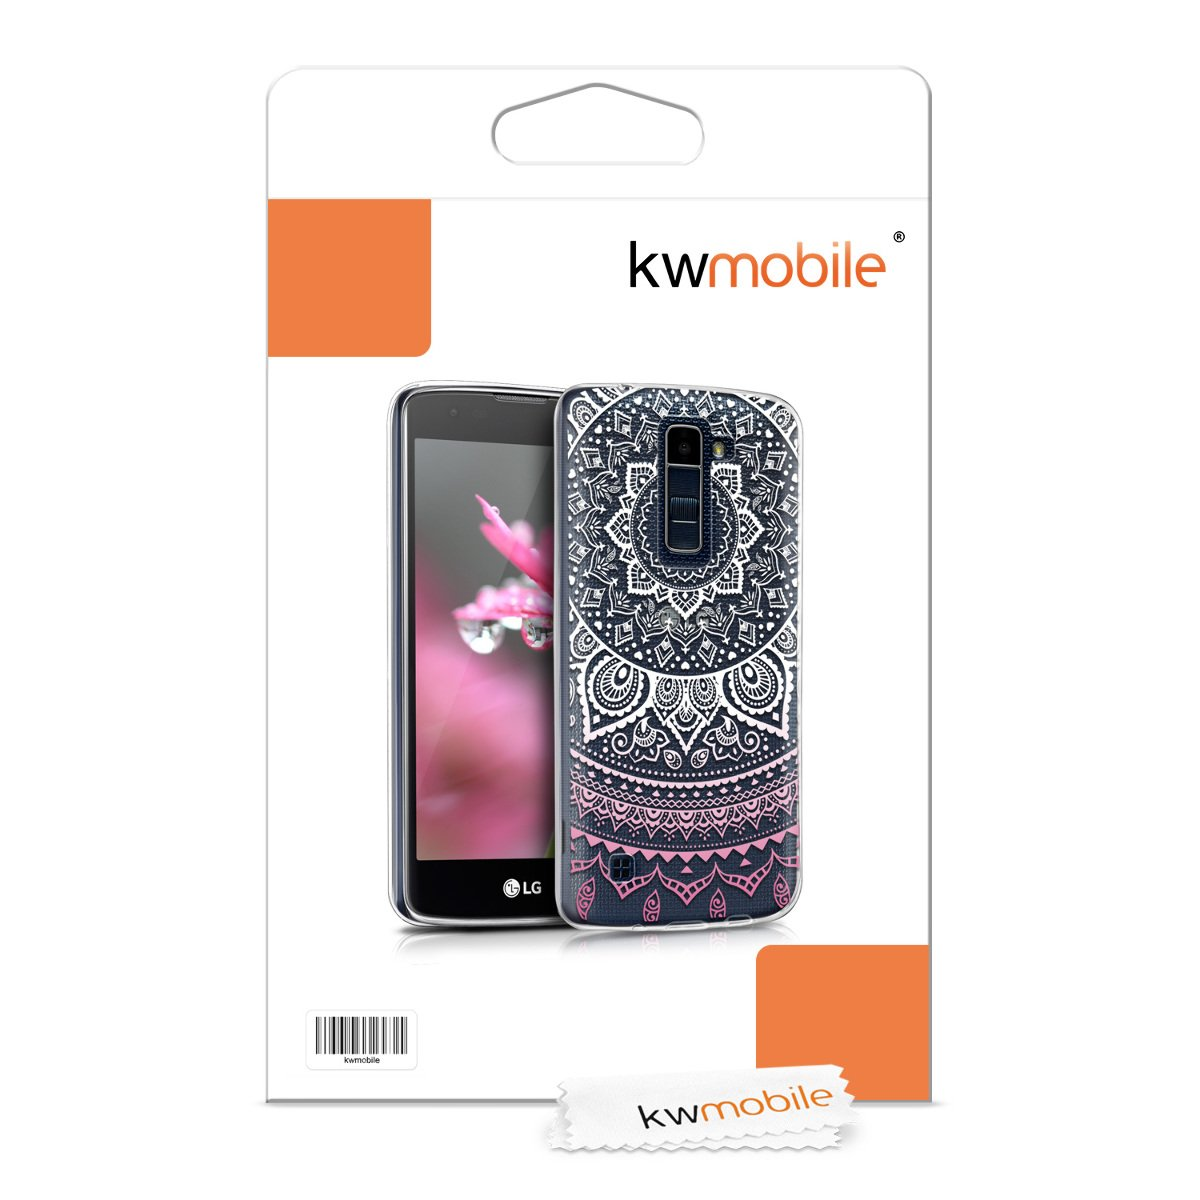 Amazon.com: kwmobile TPU Silicone Case for LG K8 LTE (2016 ...